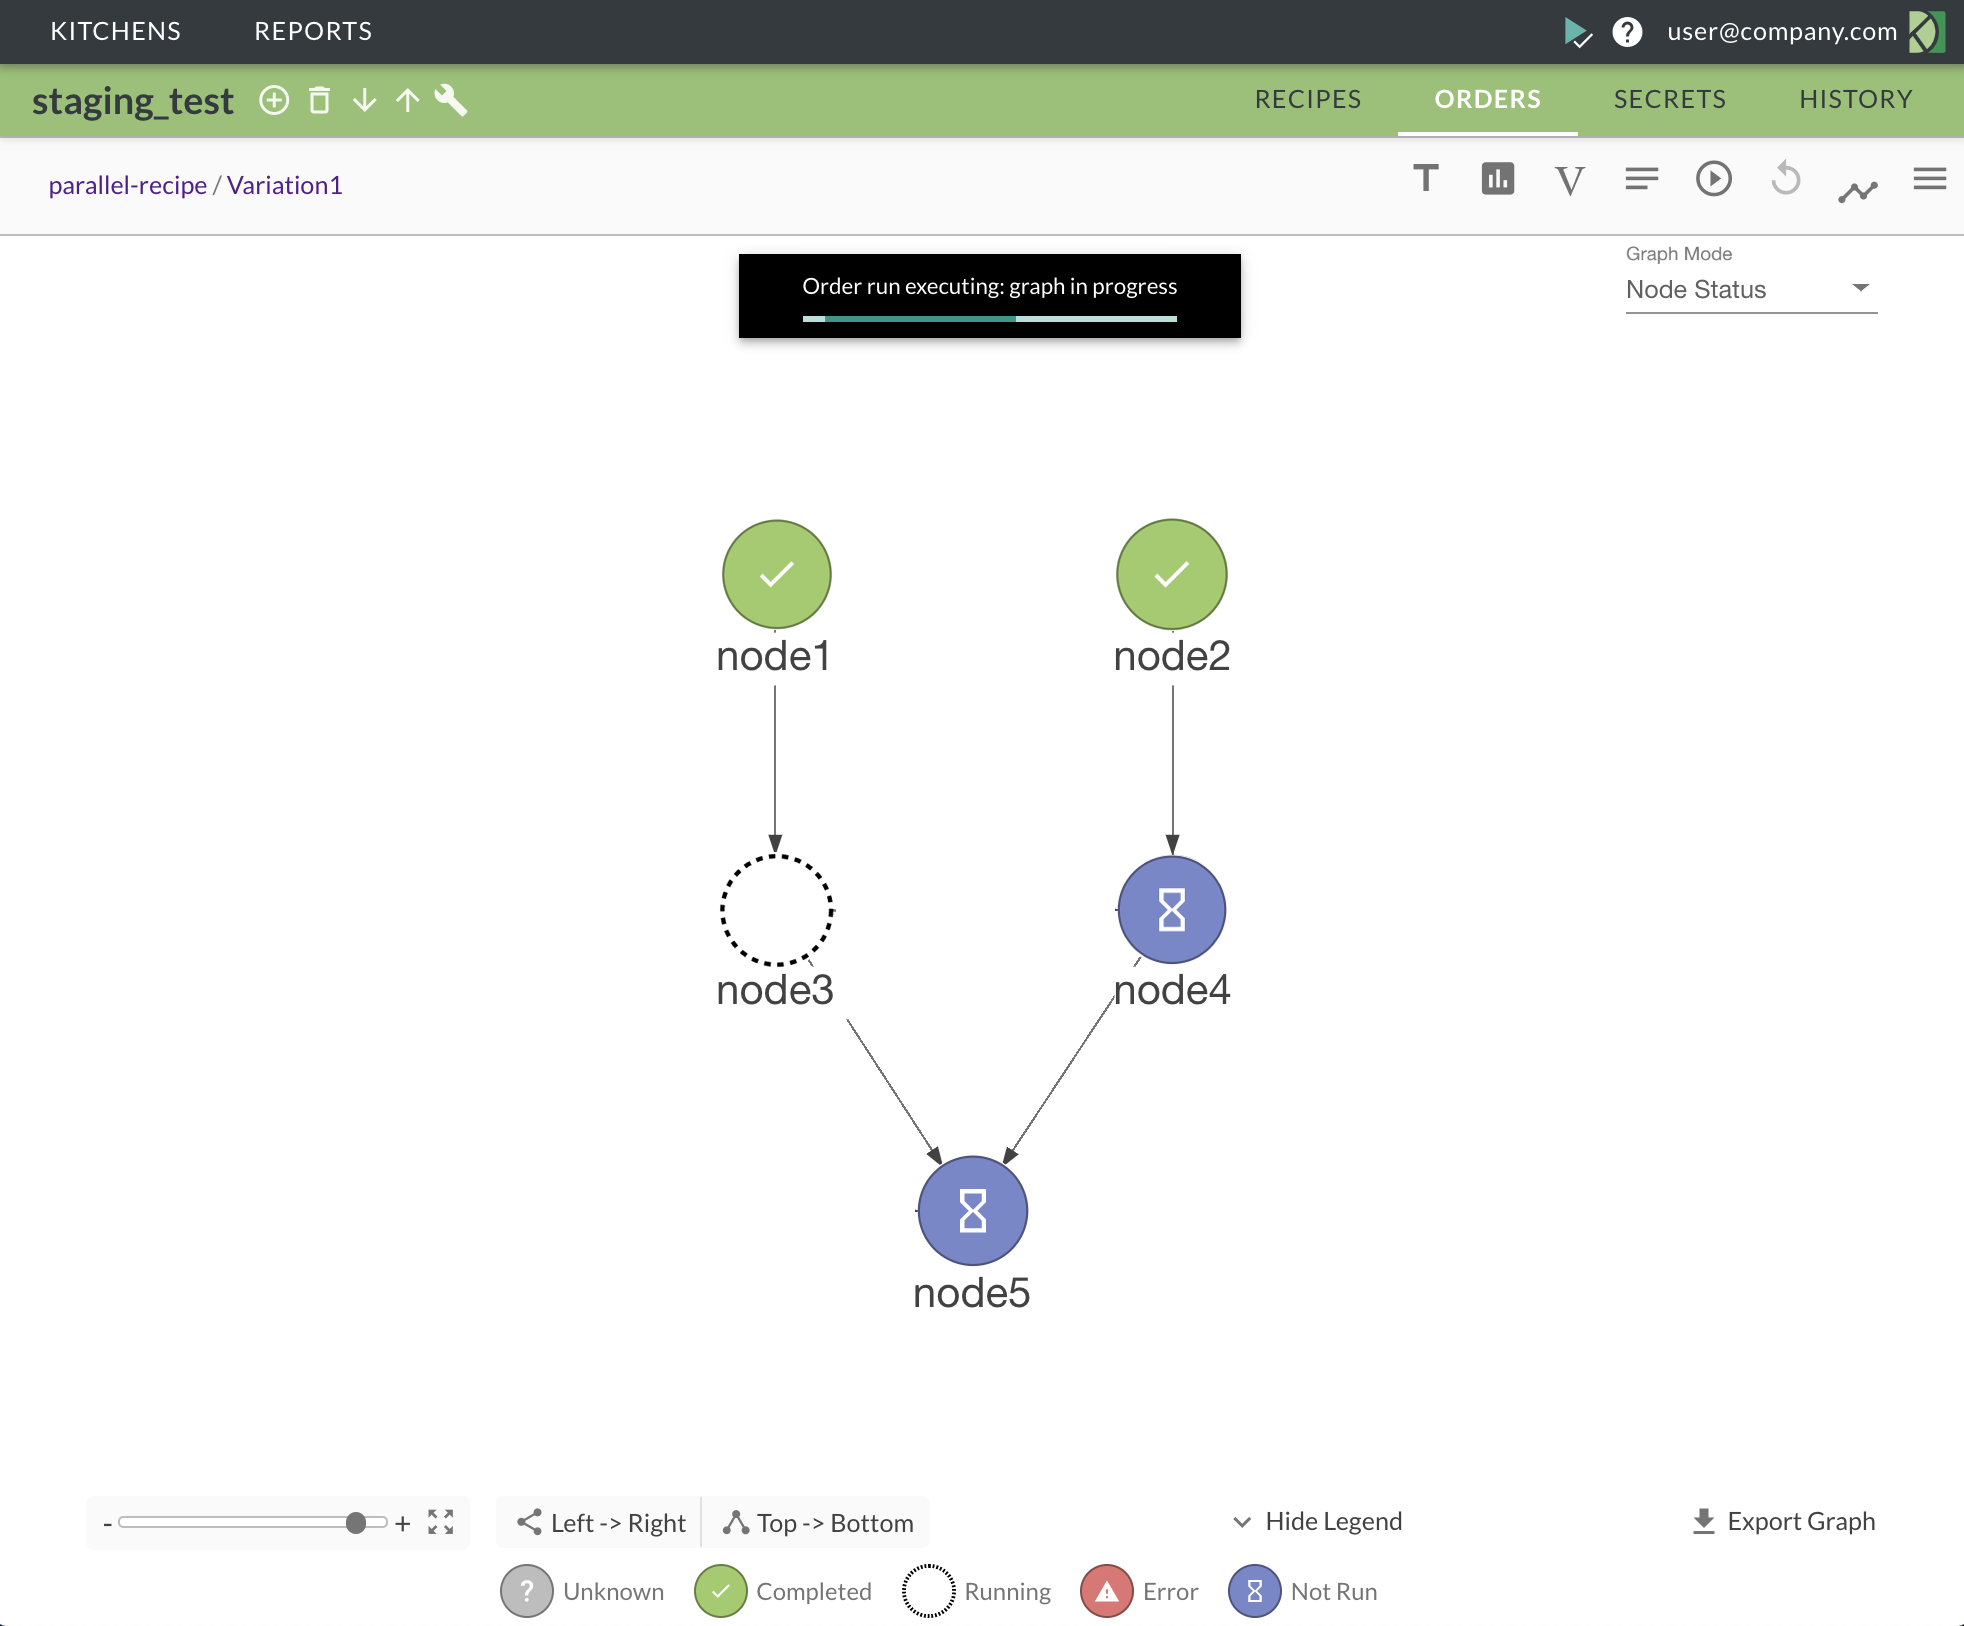 Graph processing commences with the origin nodes, node1 and node2.